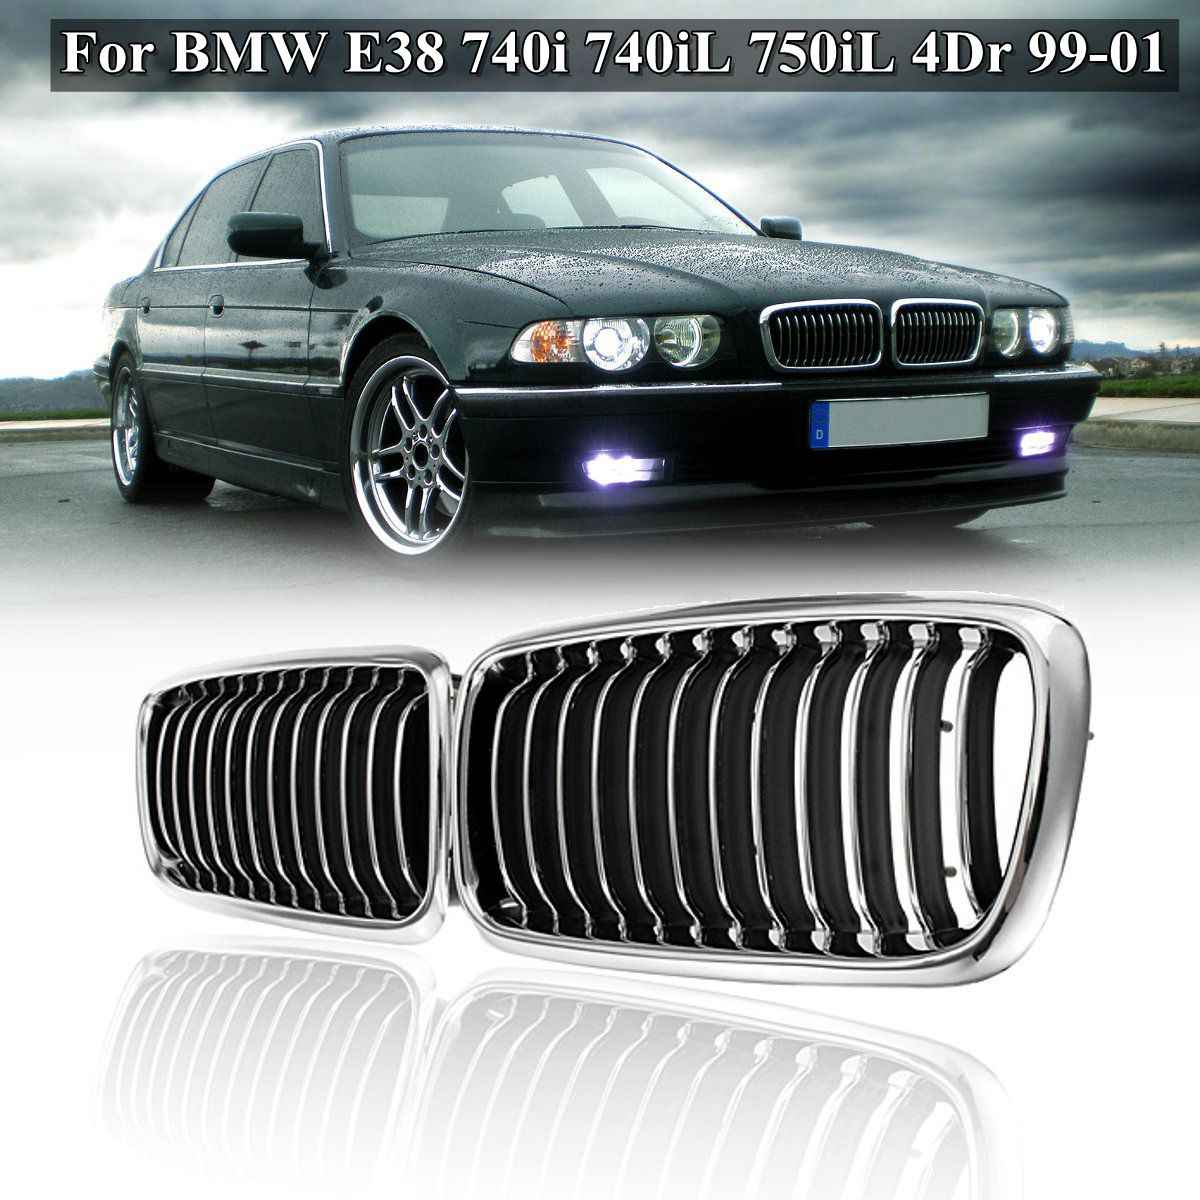 pair matte black chrome front grill grille for bmw e38 740i 740il 750il 4dr 1999 2000 [ 1200 x 1200 Pixel ]